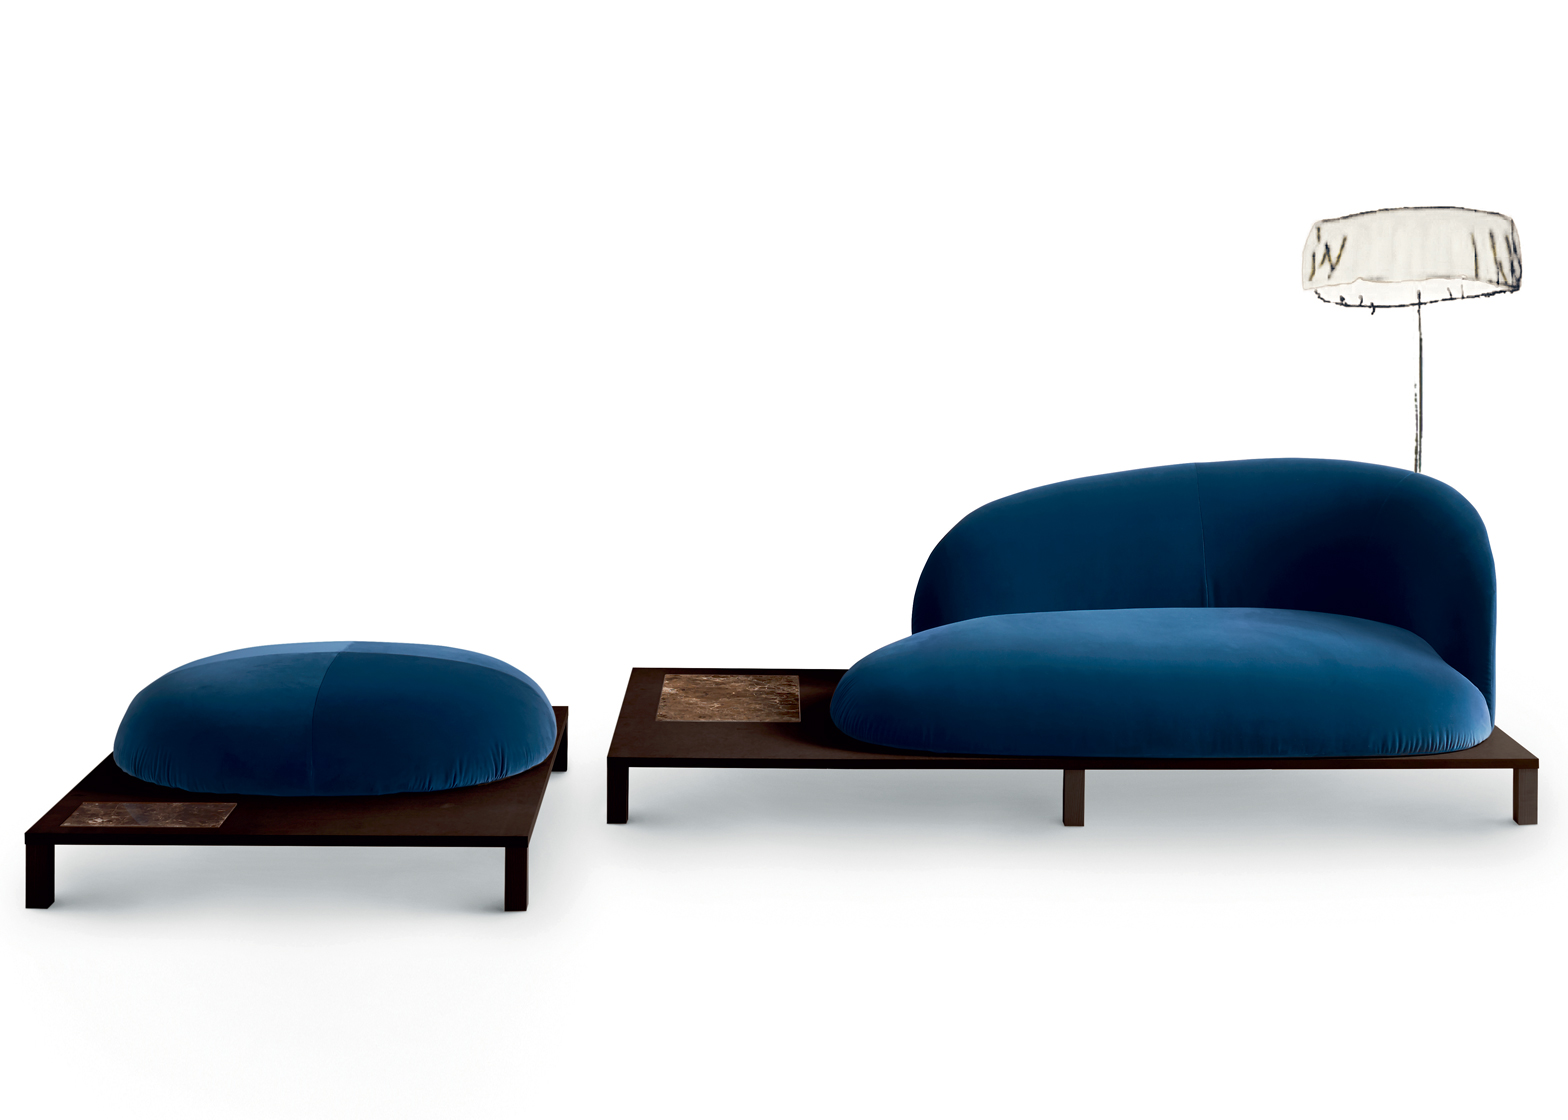 Bonsai seating by Claesson Koivisto Rune for Arflex